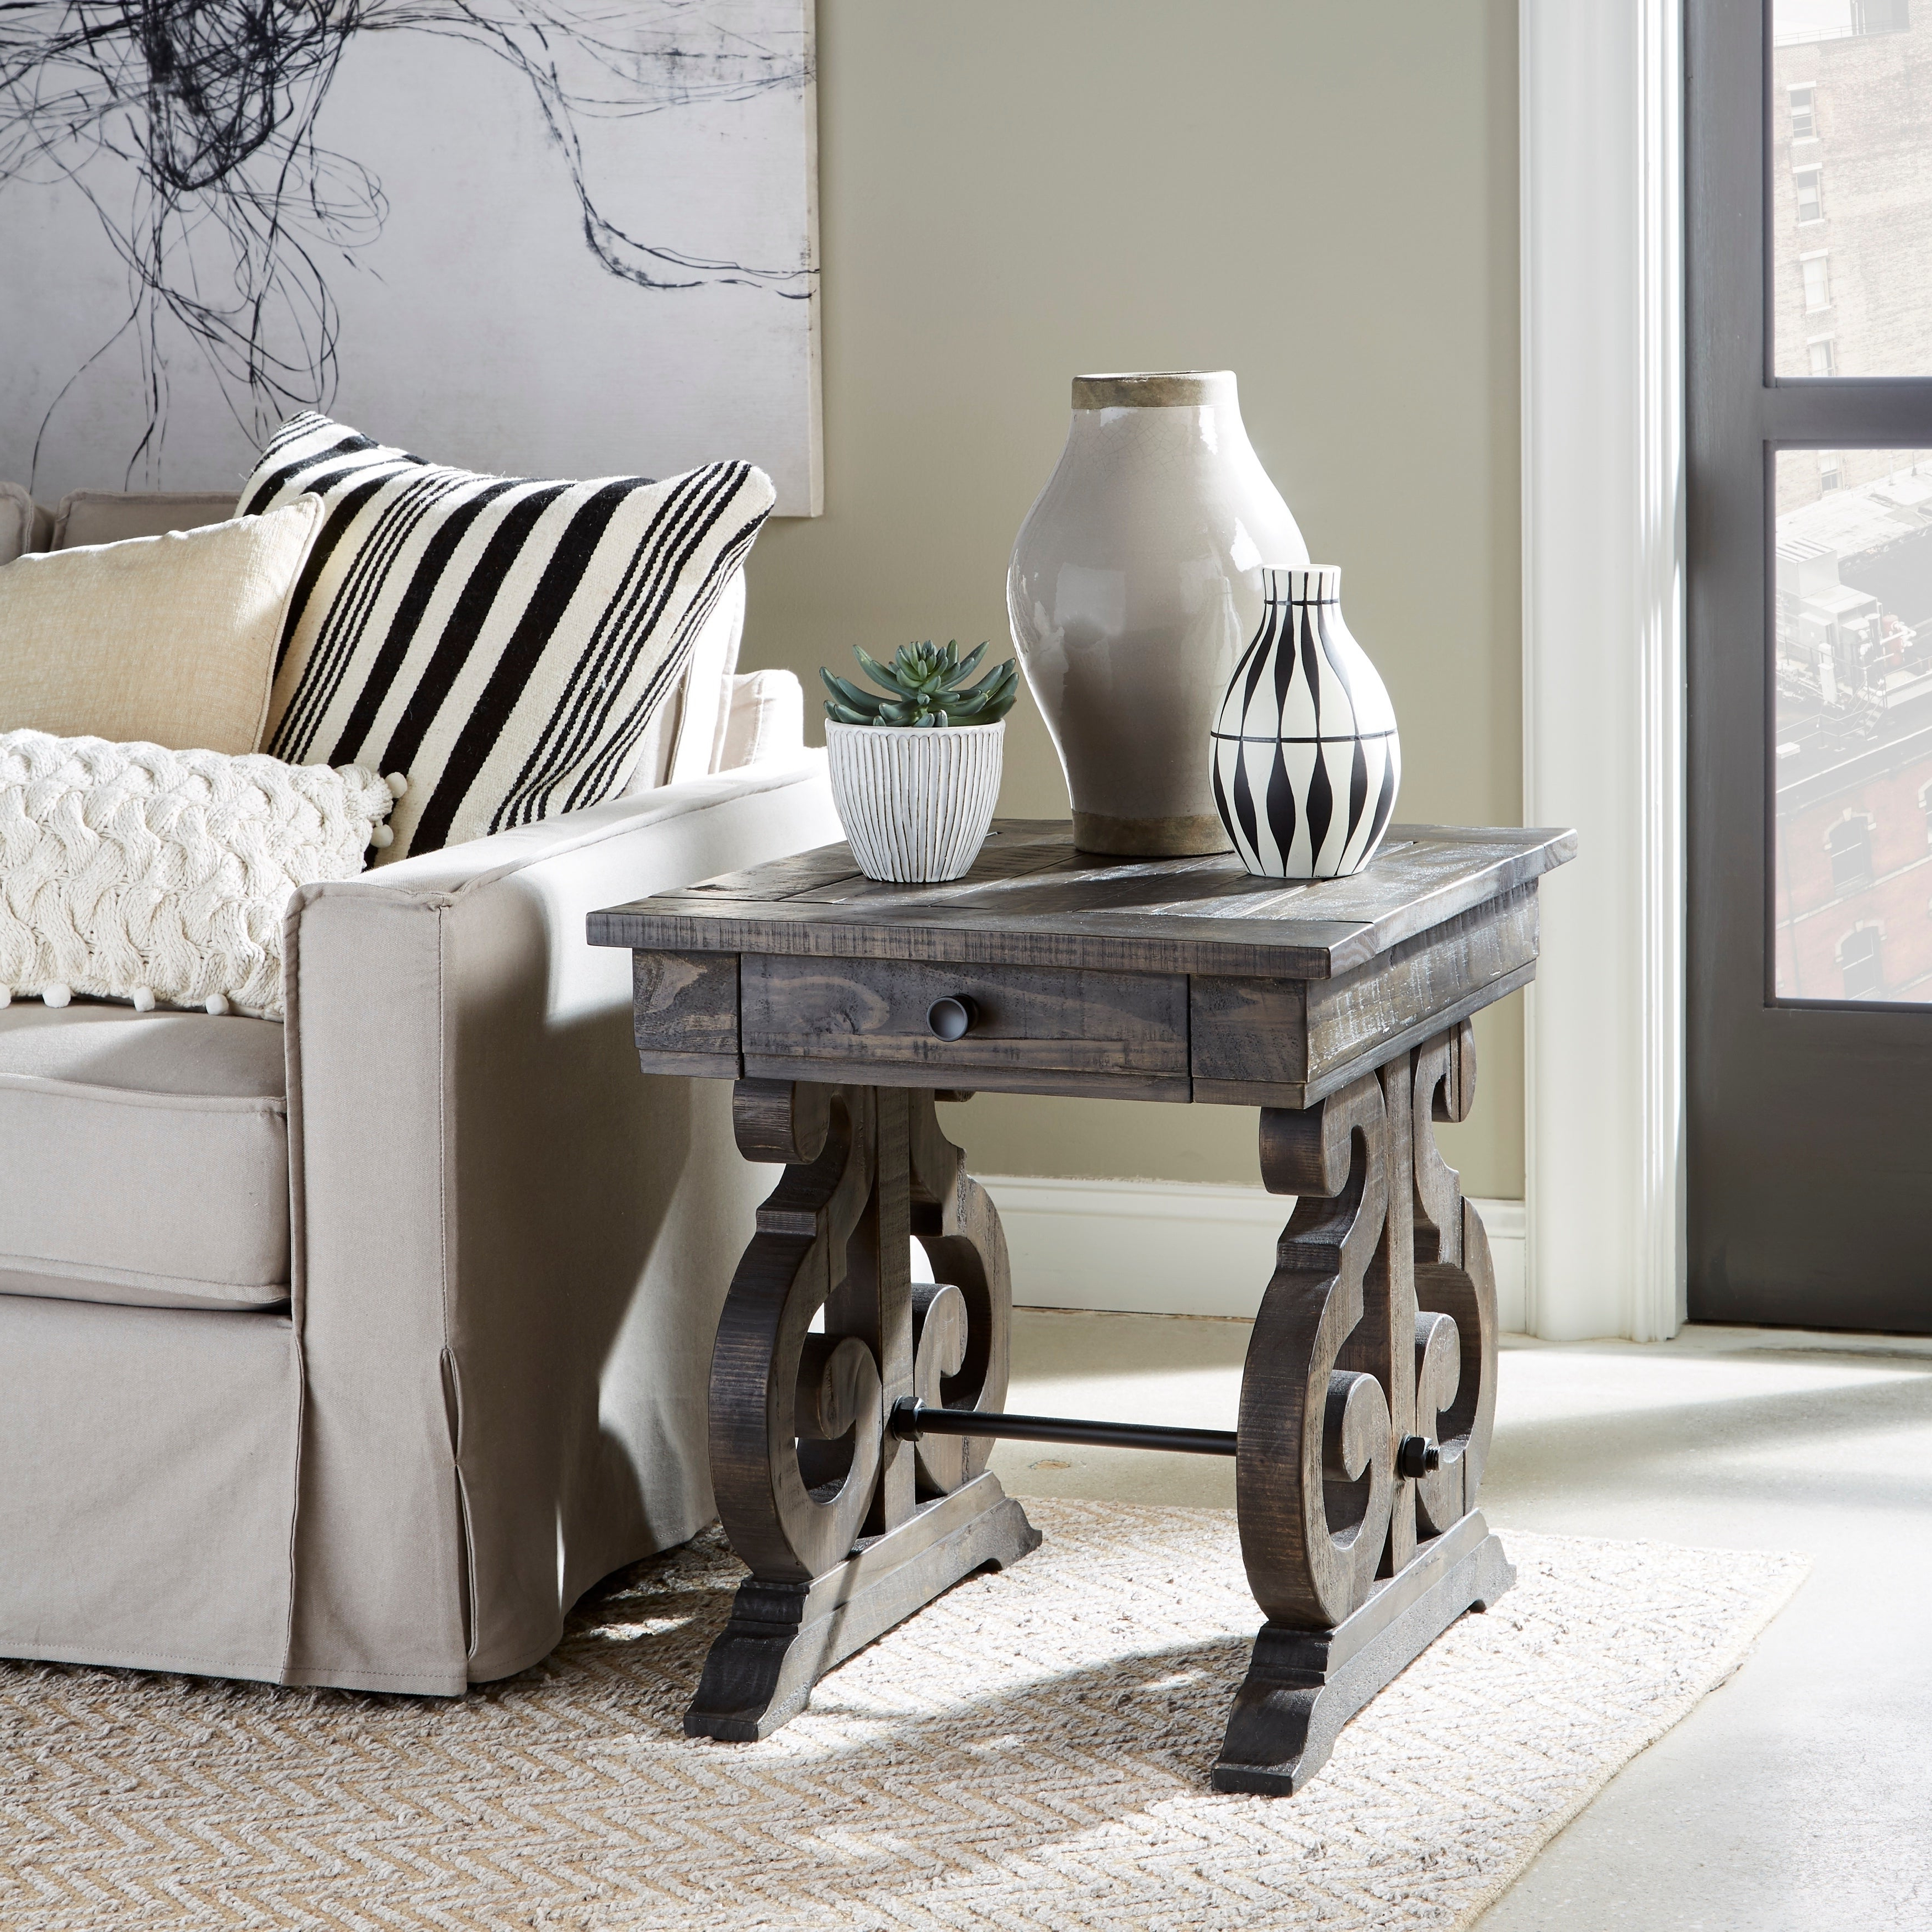 2020 Bellamy Traditional Weathered Peppercorn Storage Coffee Tables For Bellamy Traditional Weathered Peppercorn Storage End Table (View 2 of 20)